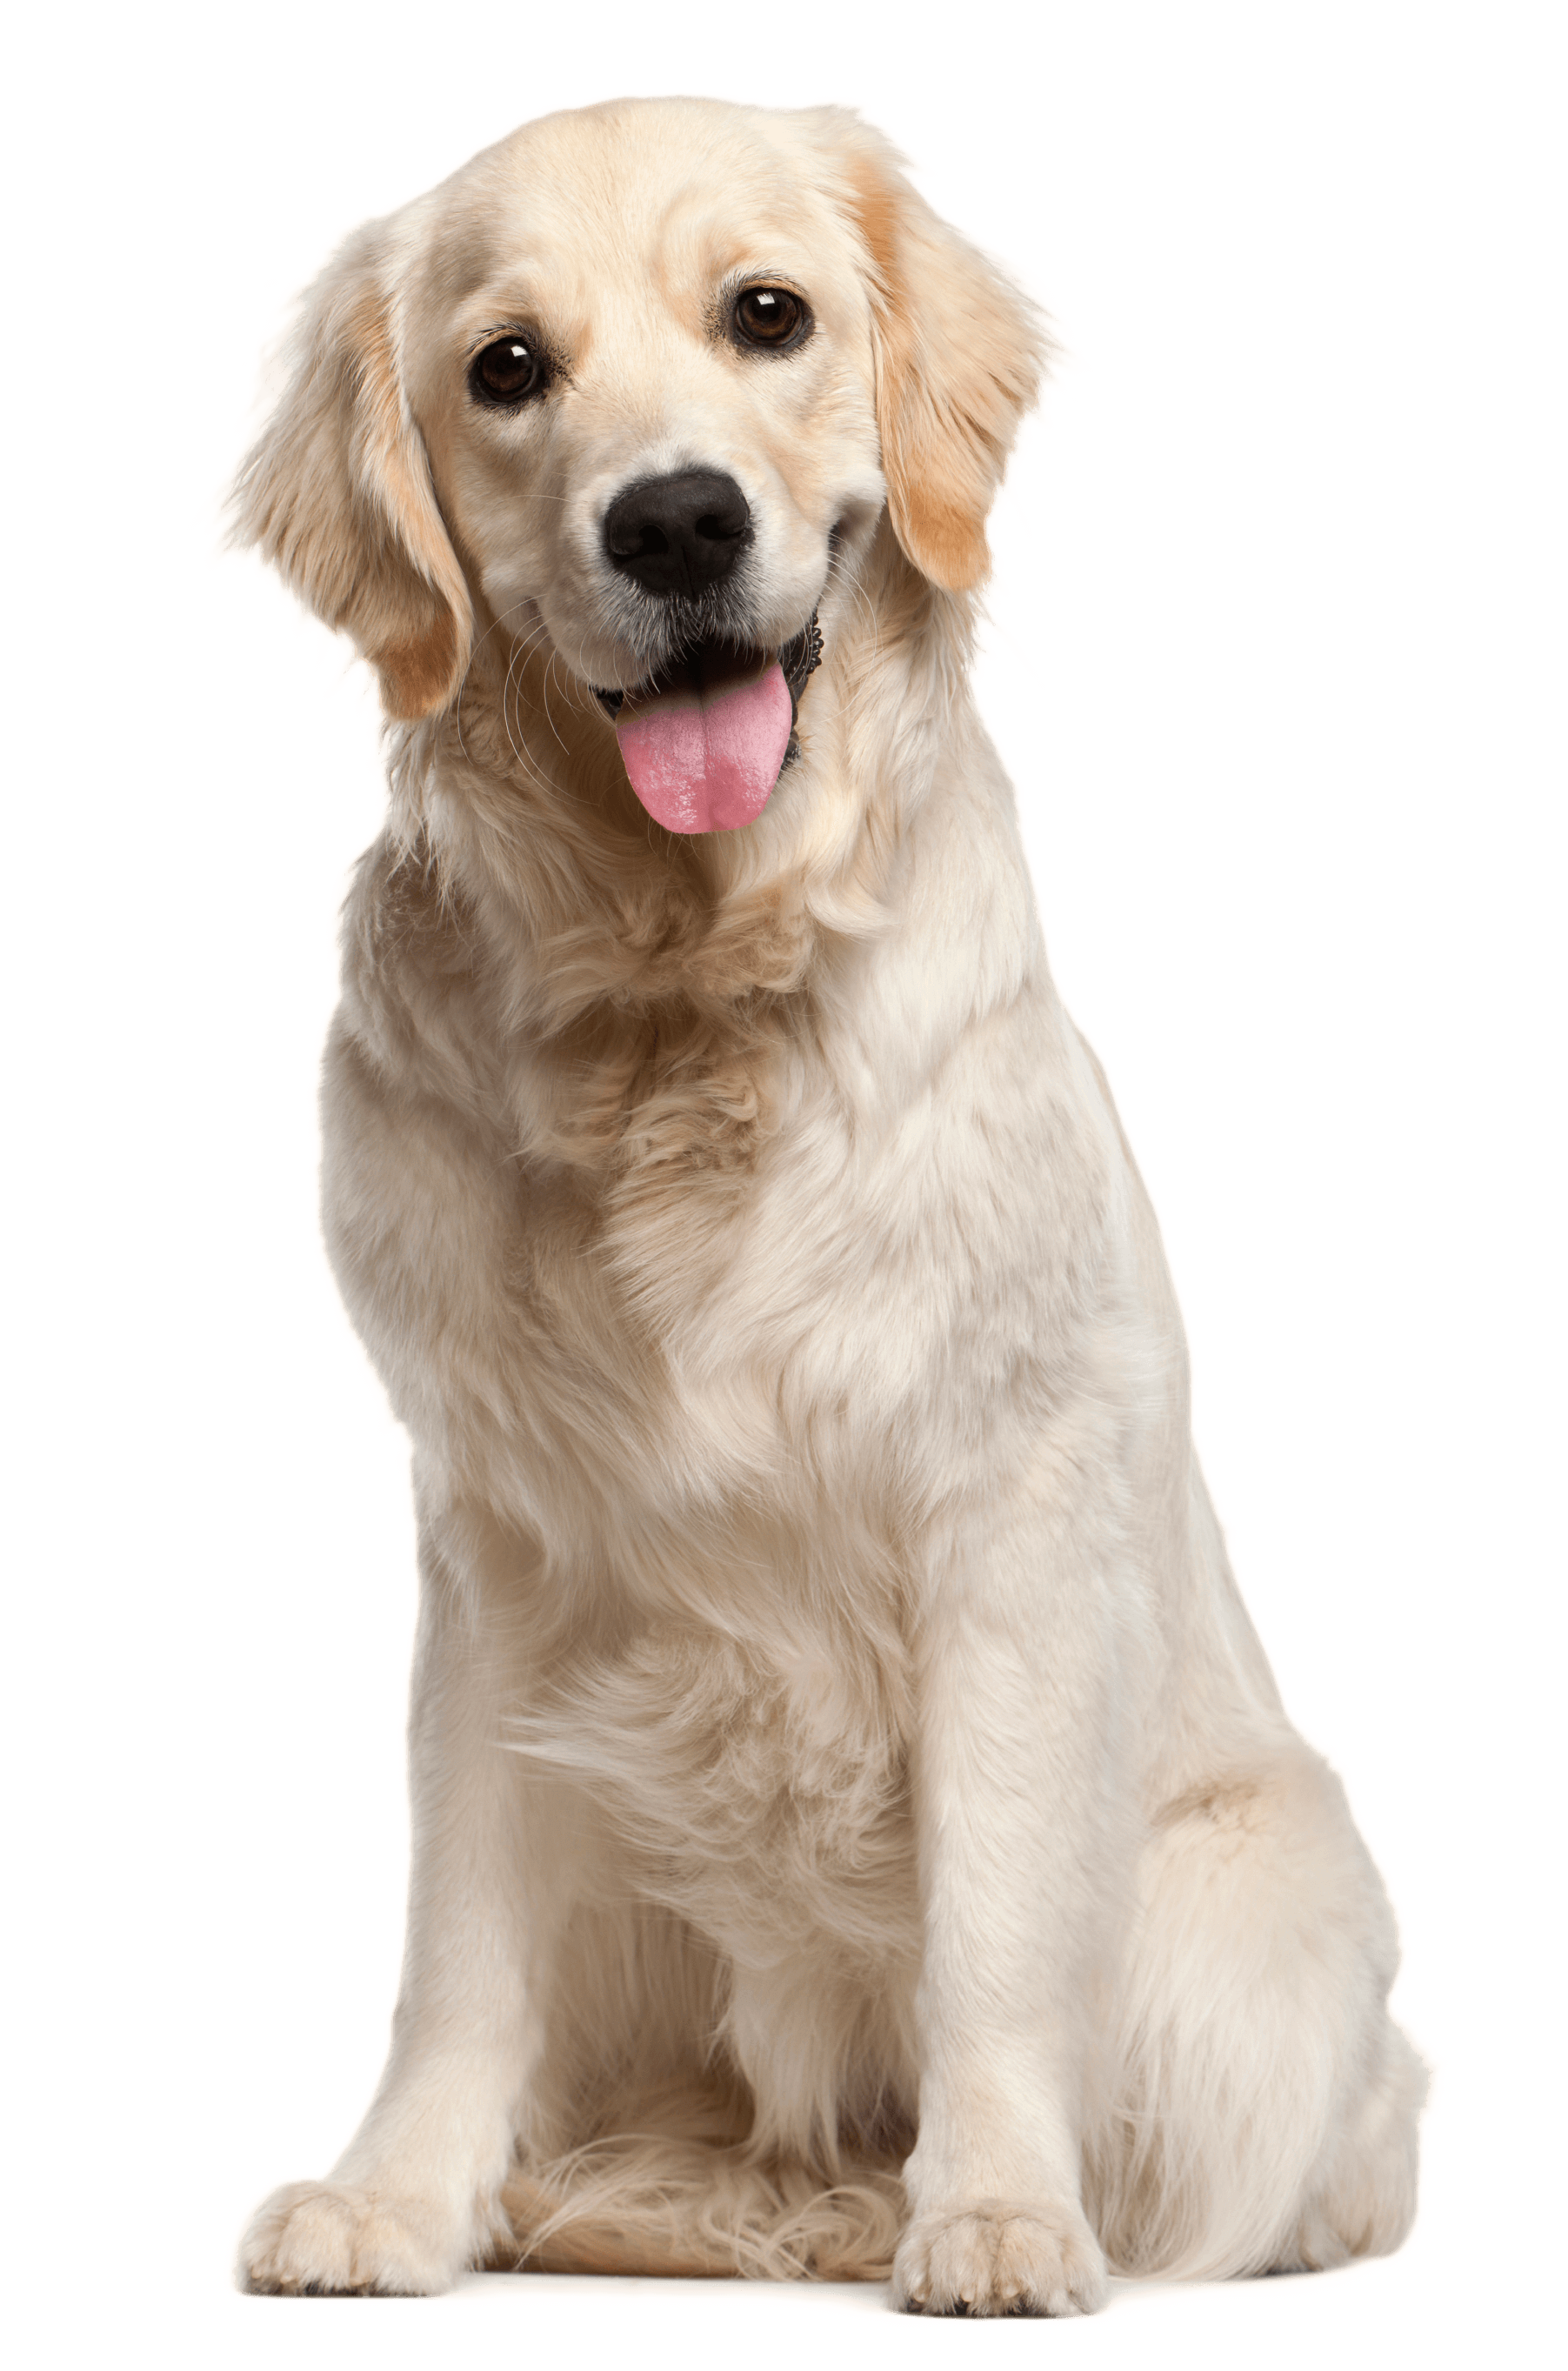 Dog Png - Dog PNG File